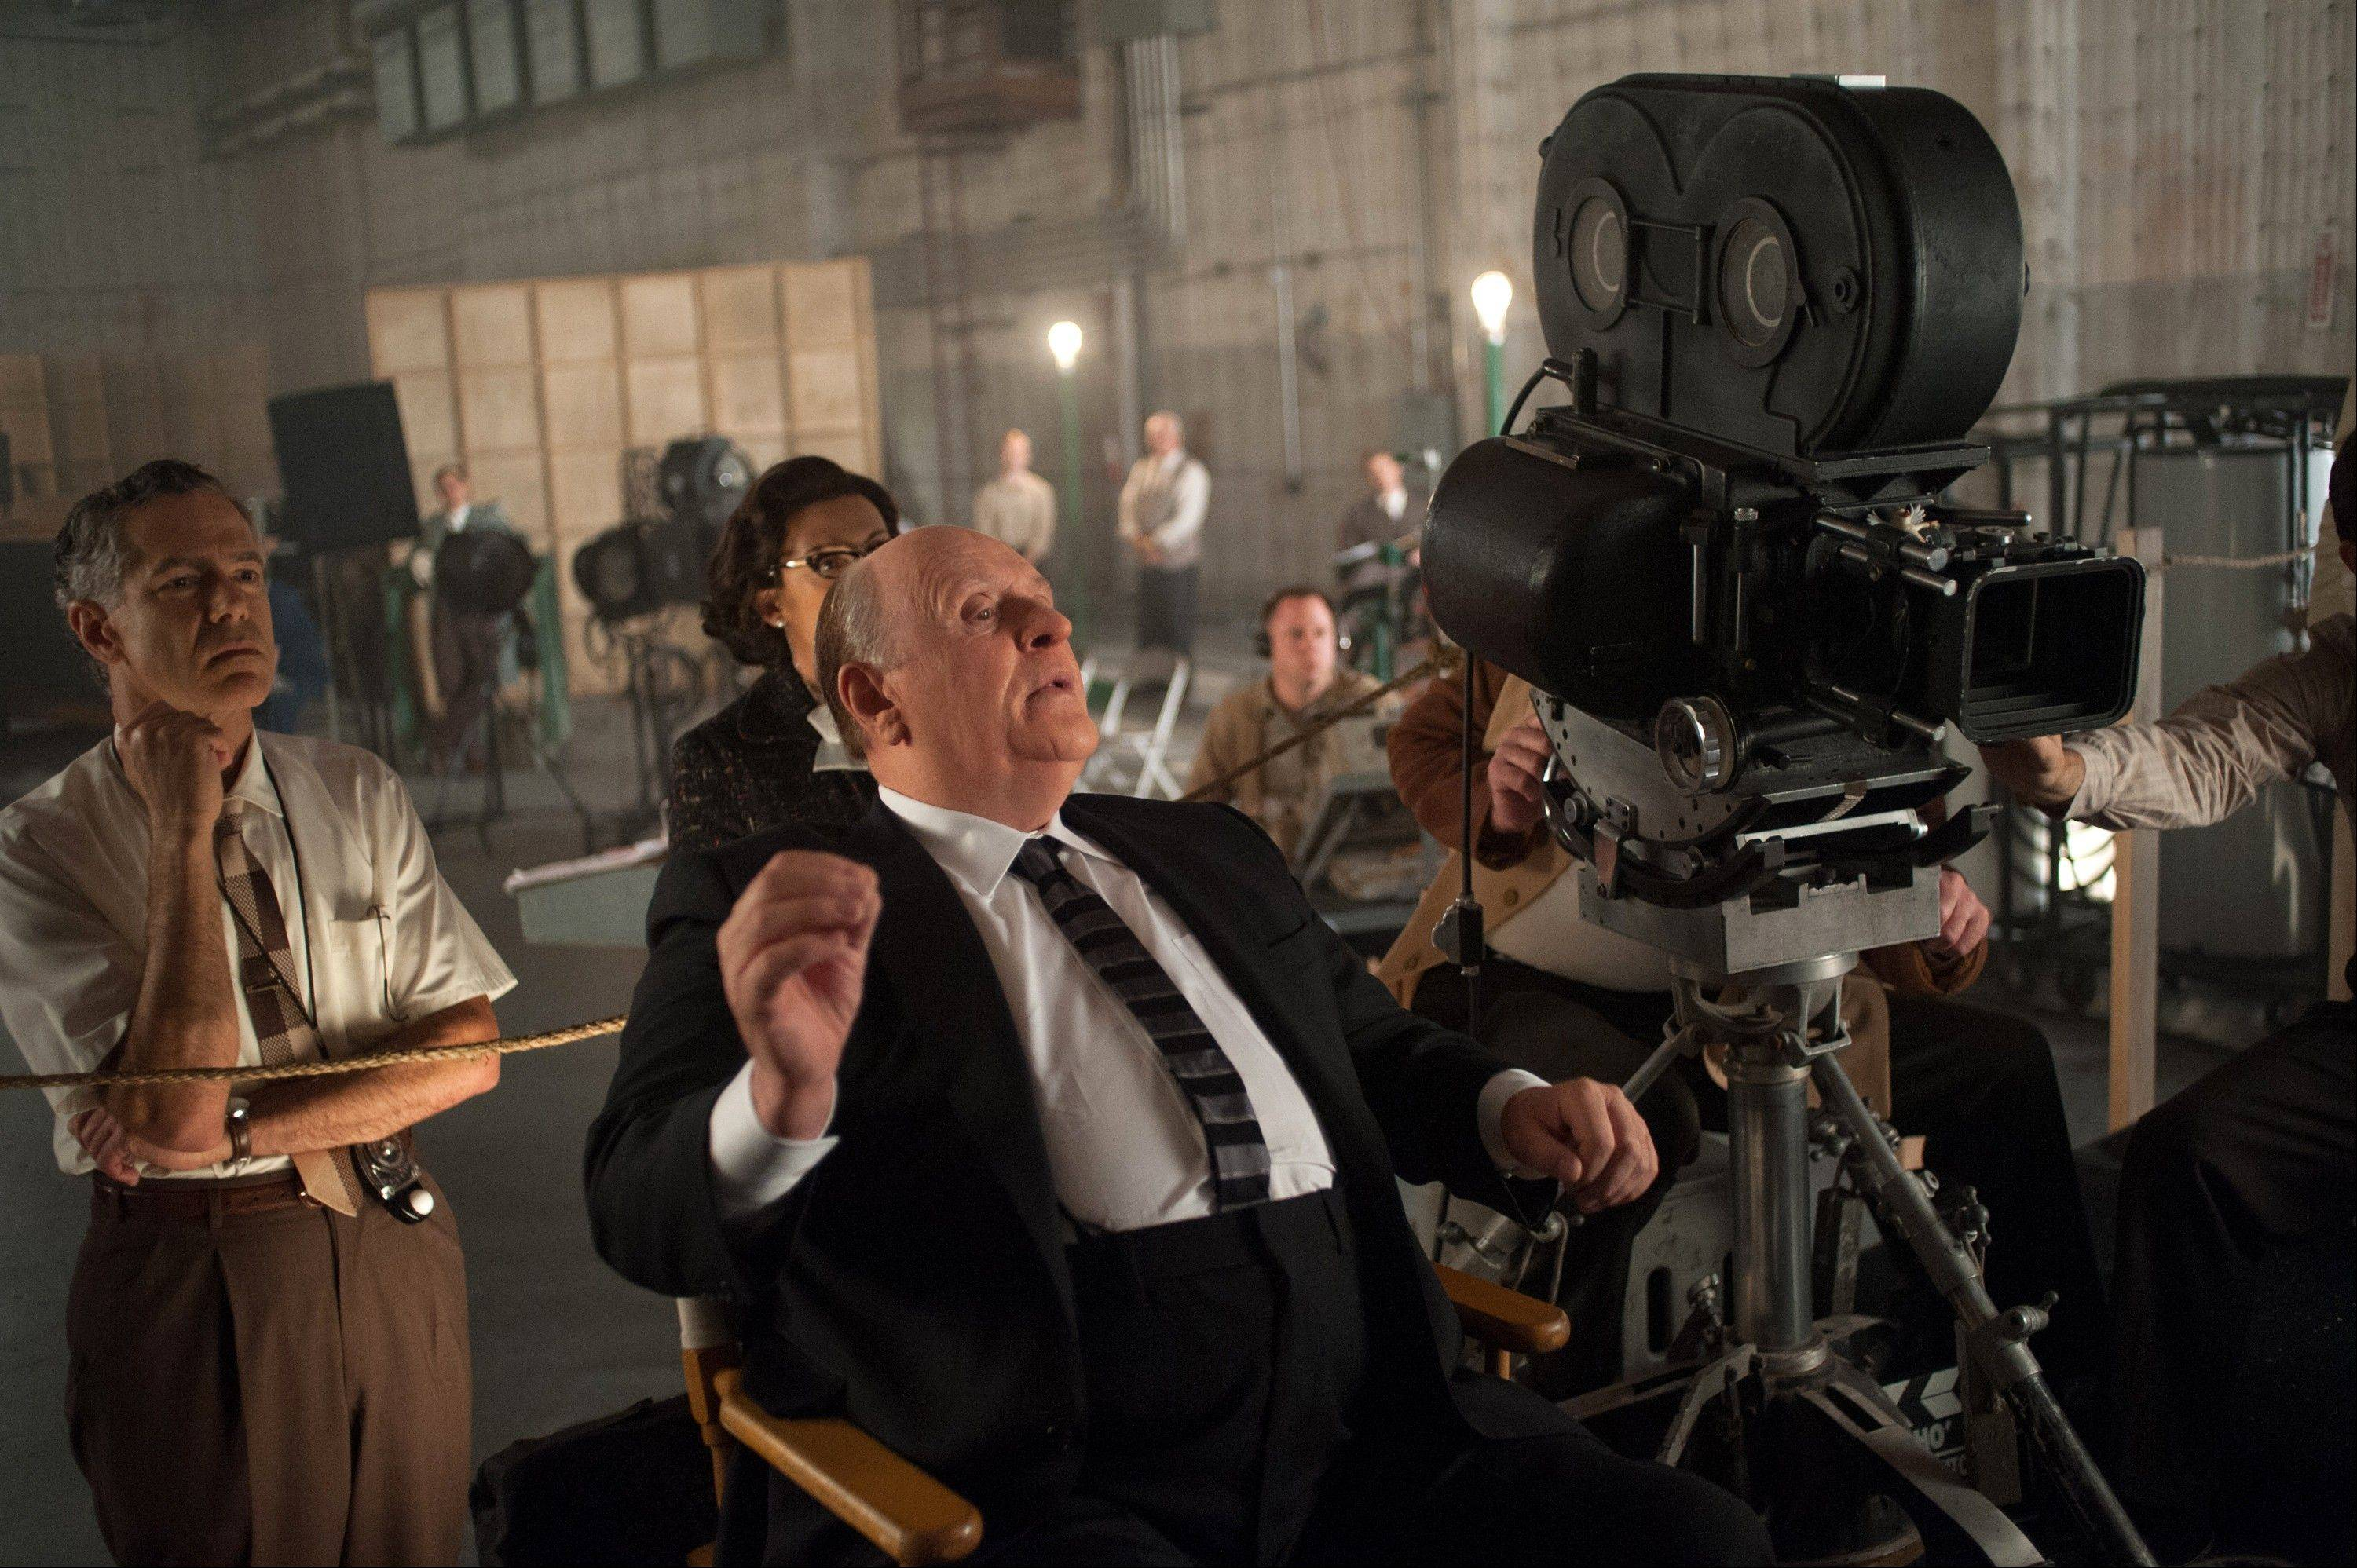 Anthony Hopkins plays Alfred Hitchcock in �Hitchcock� set during the making of the film �Psycho.�